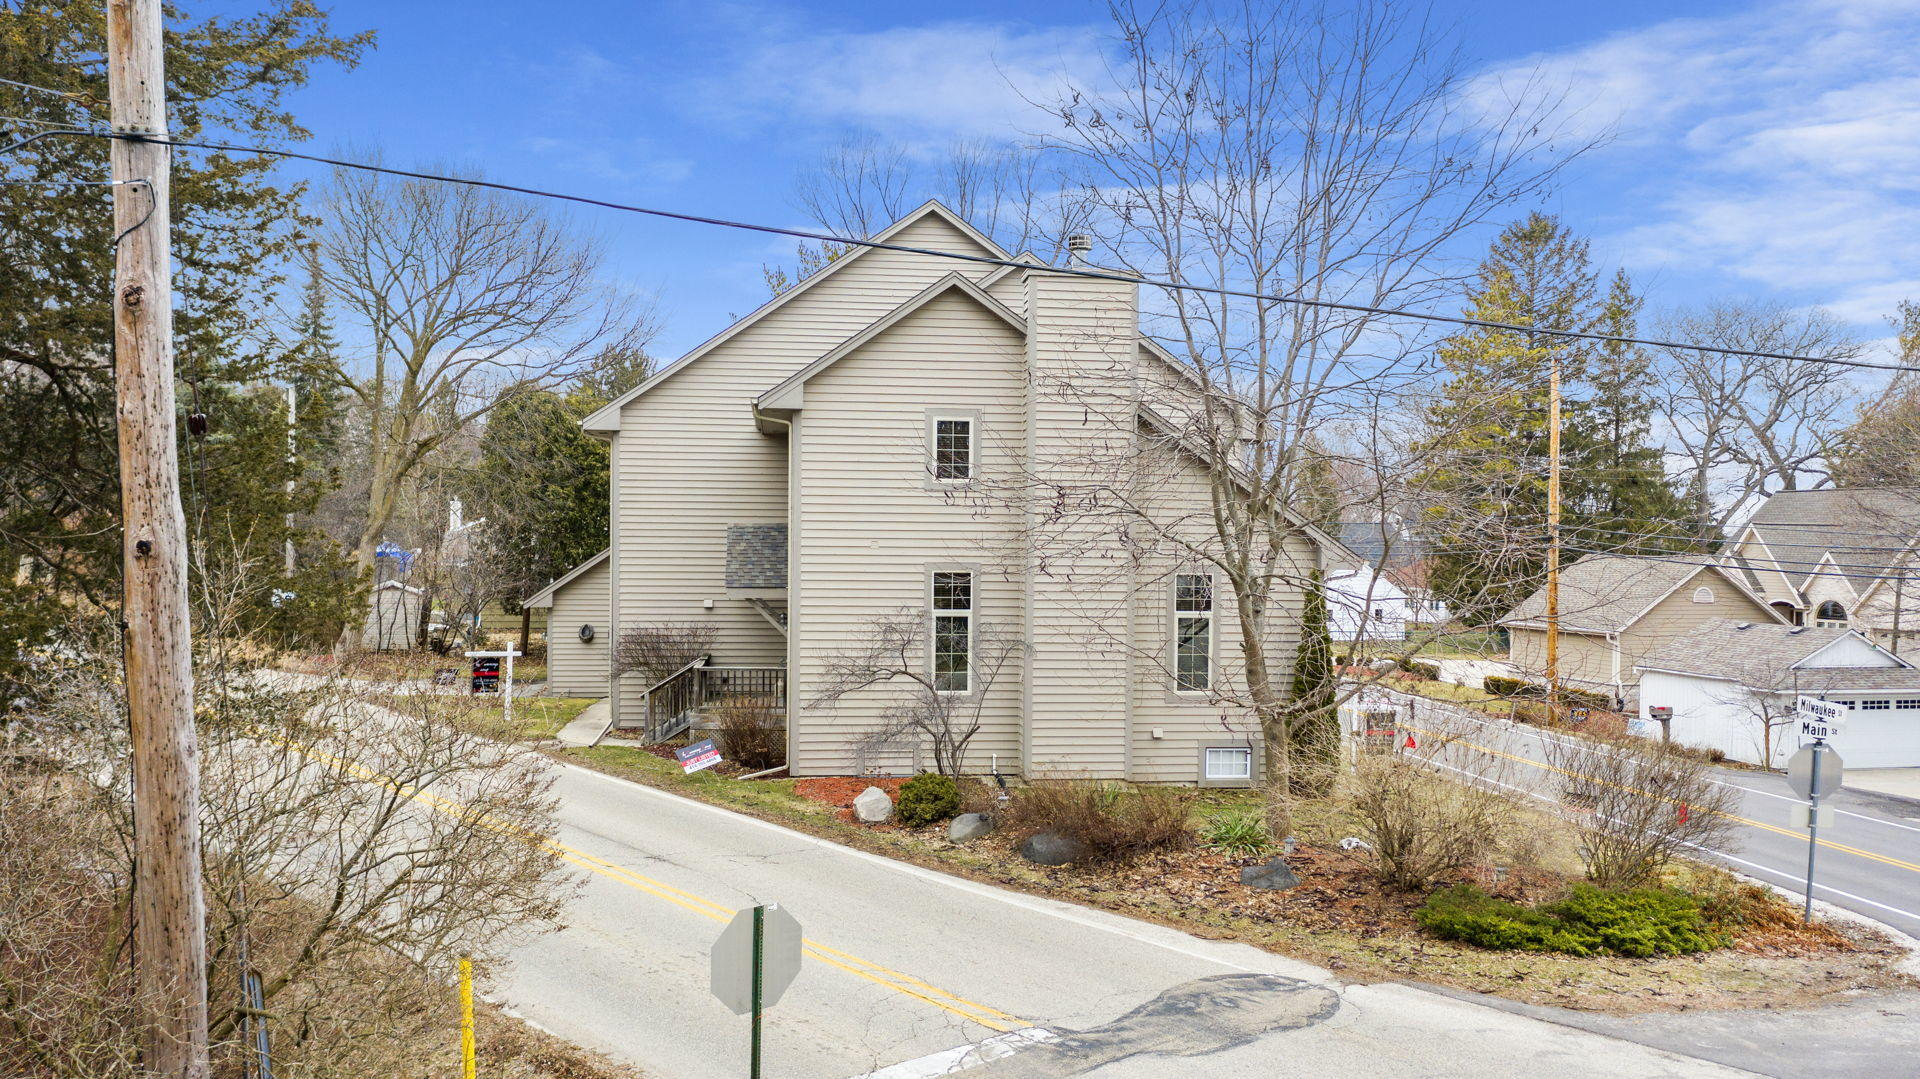 1451 Main St, Delafield, Wisconsin 53018, 3 Bedrooms Bedrooms, 6 Rooms Rooms,3 BathroomsBathrooms,Single-Family,For Sale,Main St,1680732